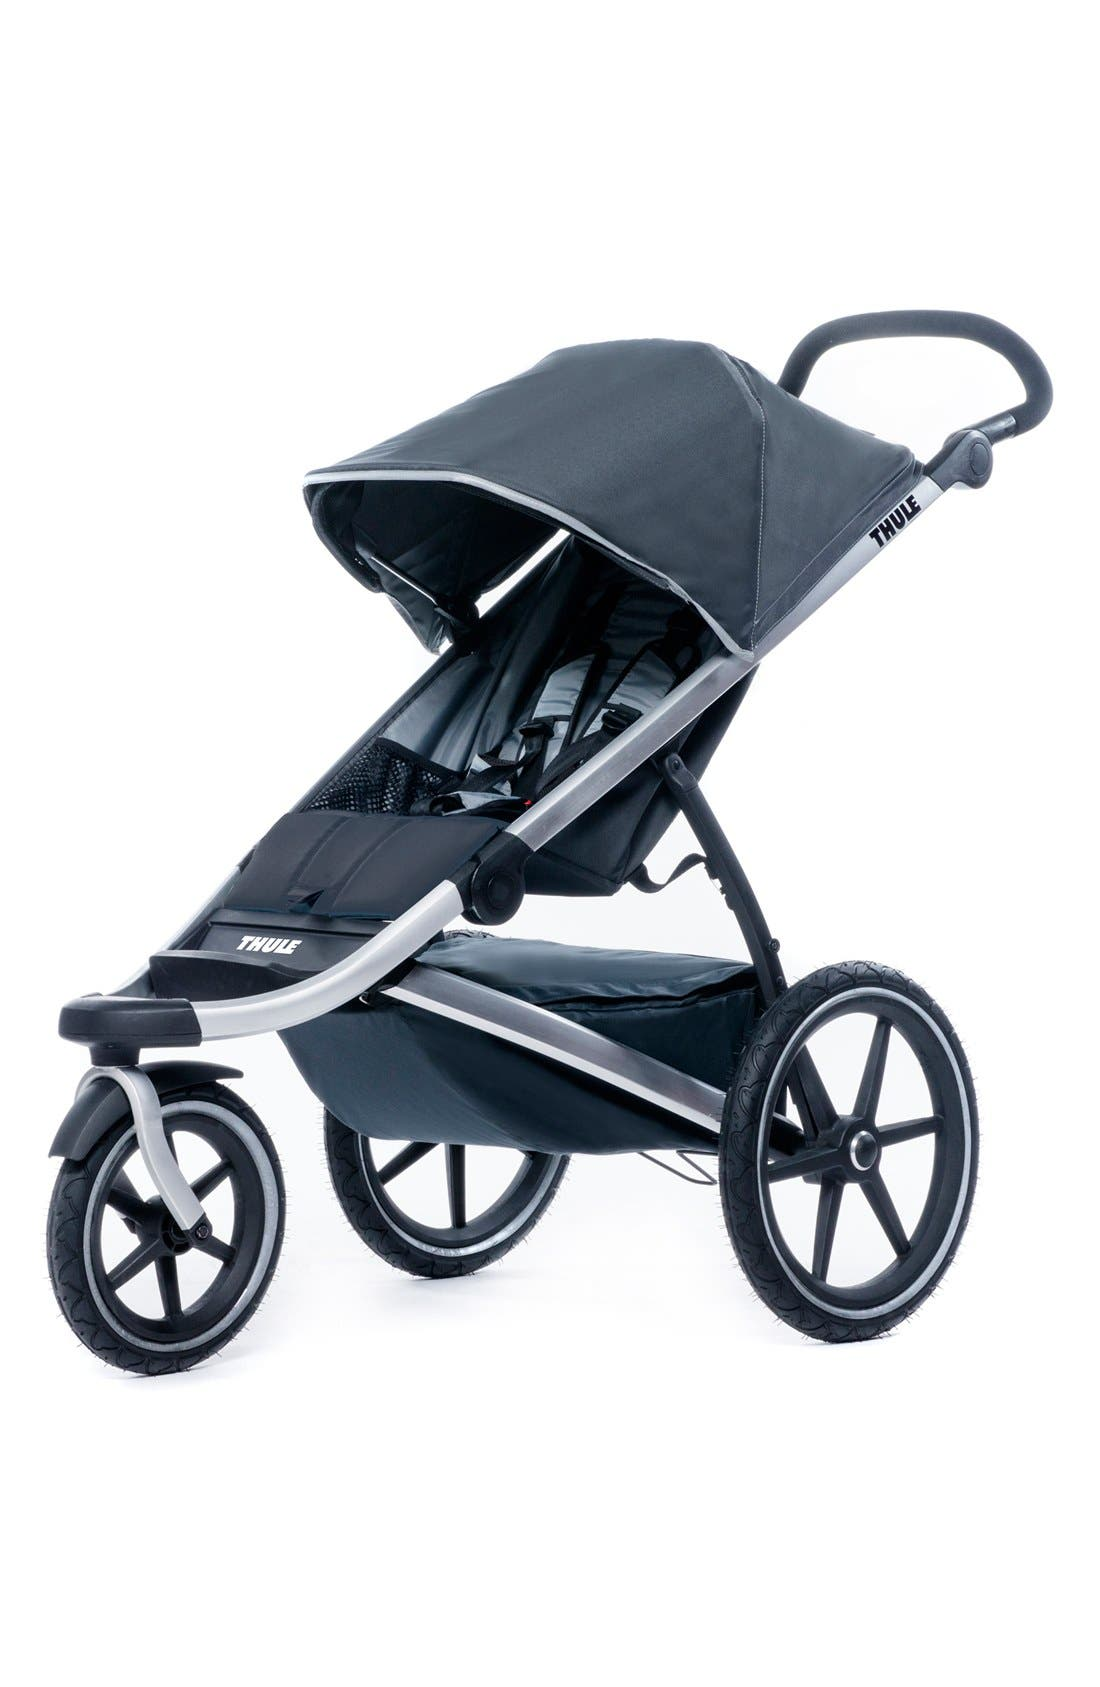 Alternate Image 1 Selected - Thule 'Urban Glide 1' Jogging Stroller